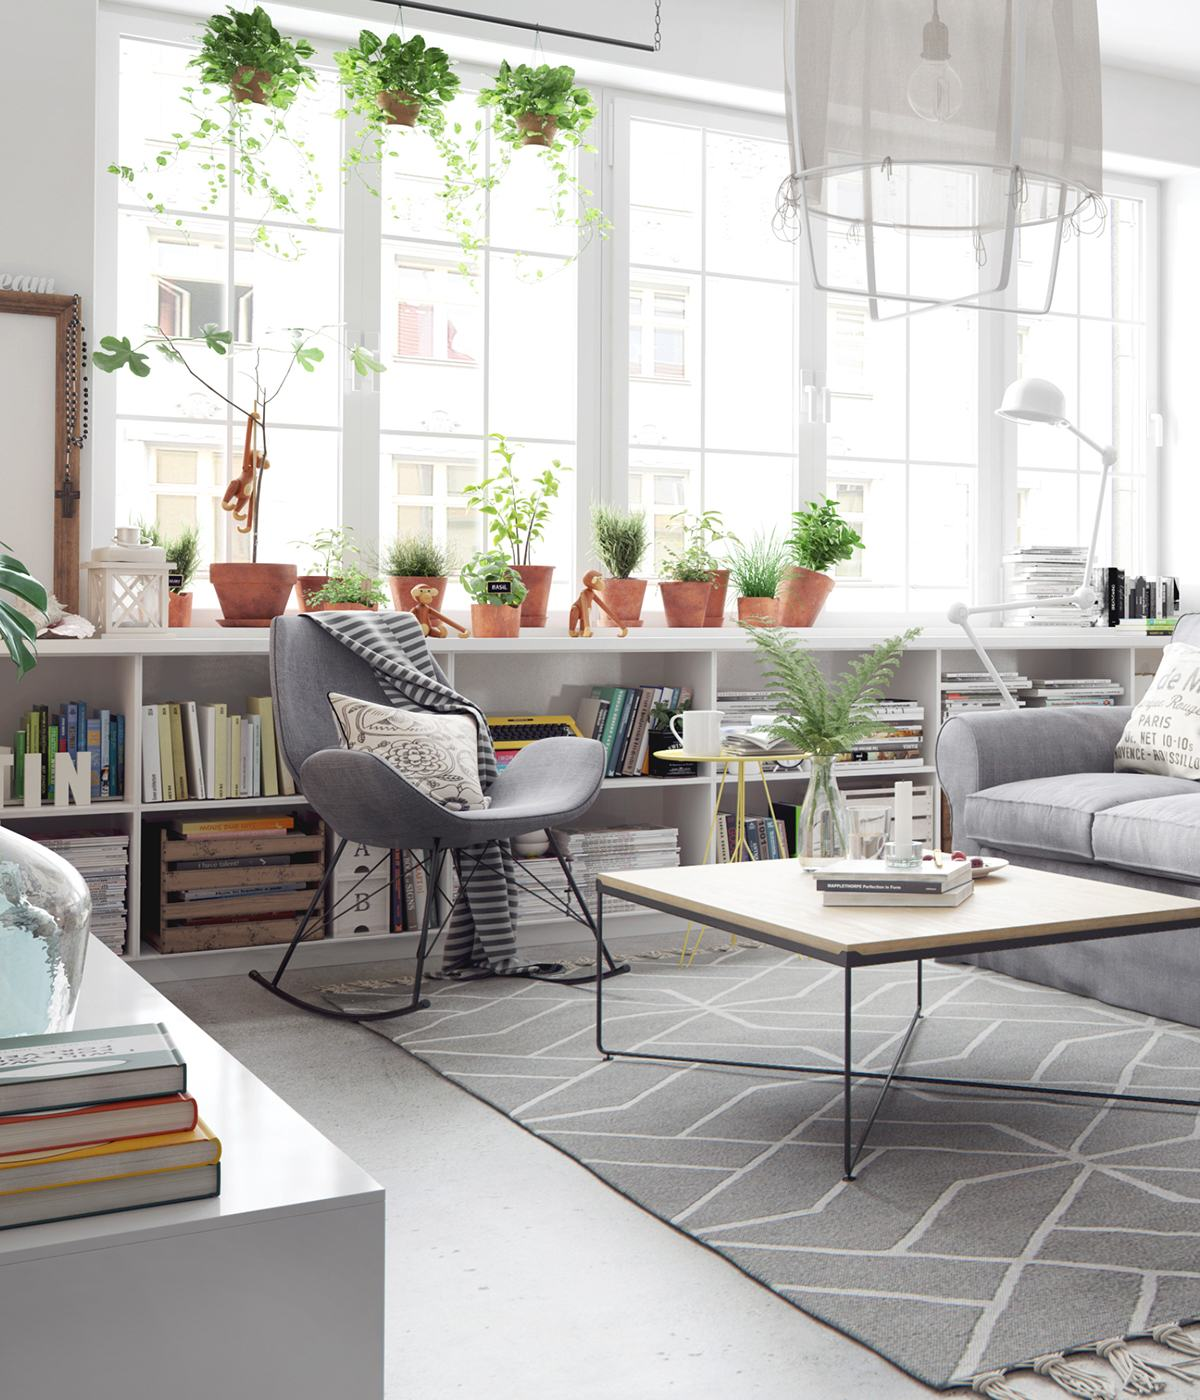 Nordic Design Furniture Bright And Cheerful 5 Beautiful Scandinavian Inspired